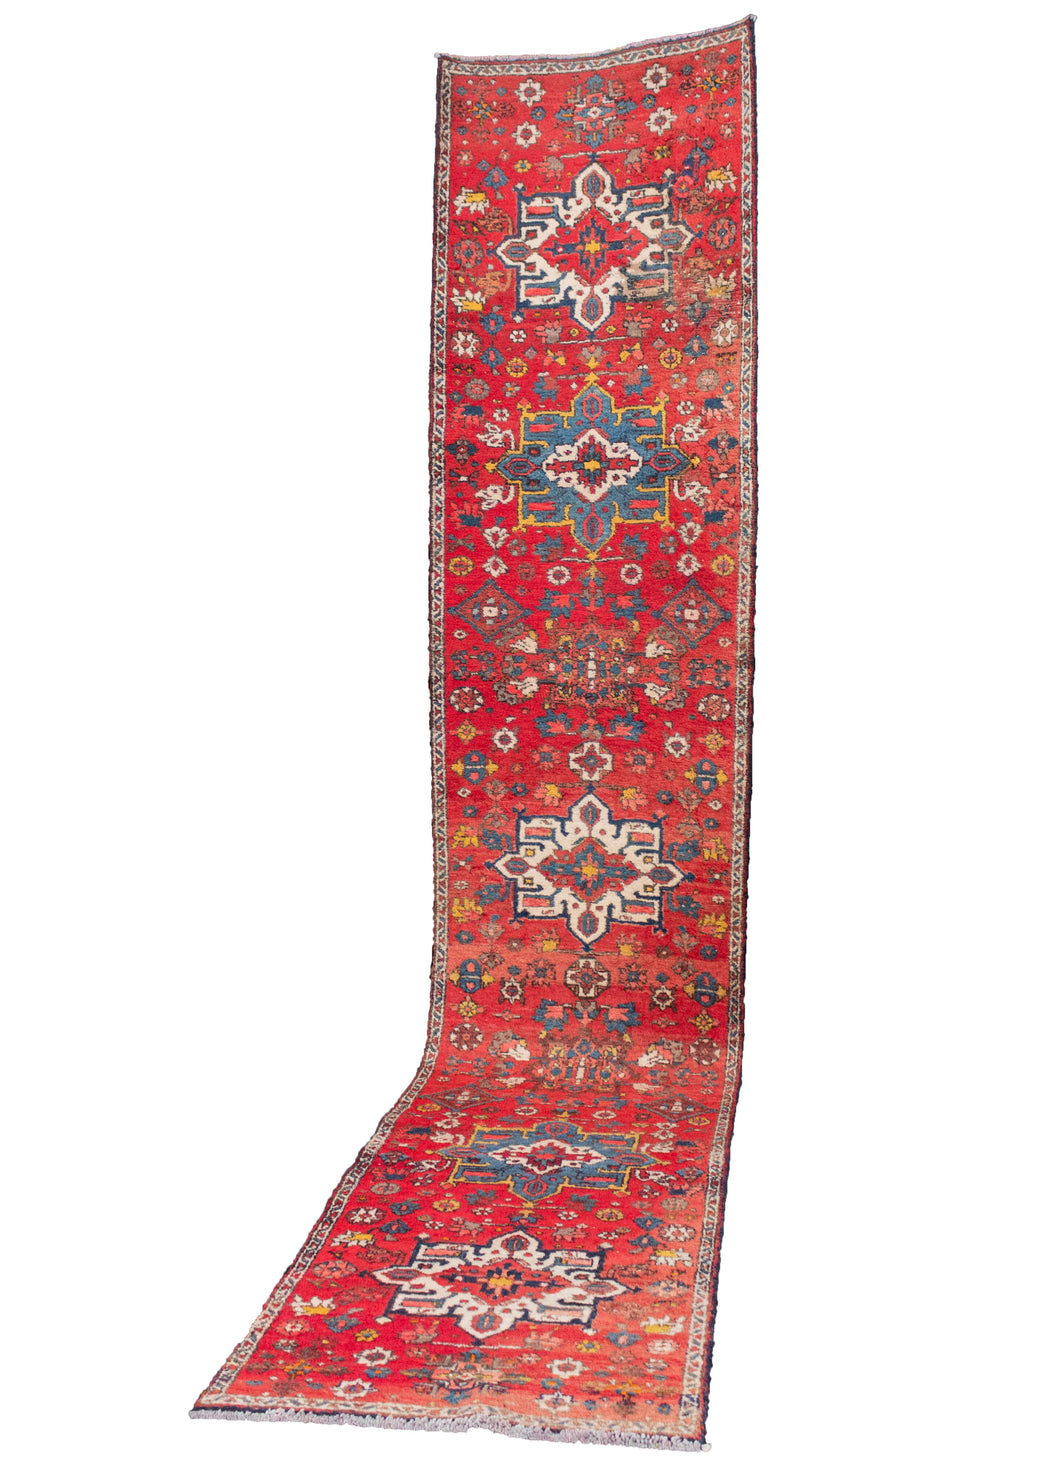 Mid-century Karaja rug with medallion design on a bright red field. Accent colors are blues, ivories, and browns. In good condition, with some moth damage throughout but foundation is still intact.